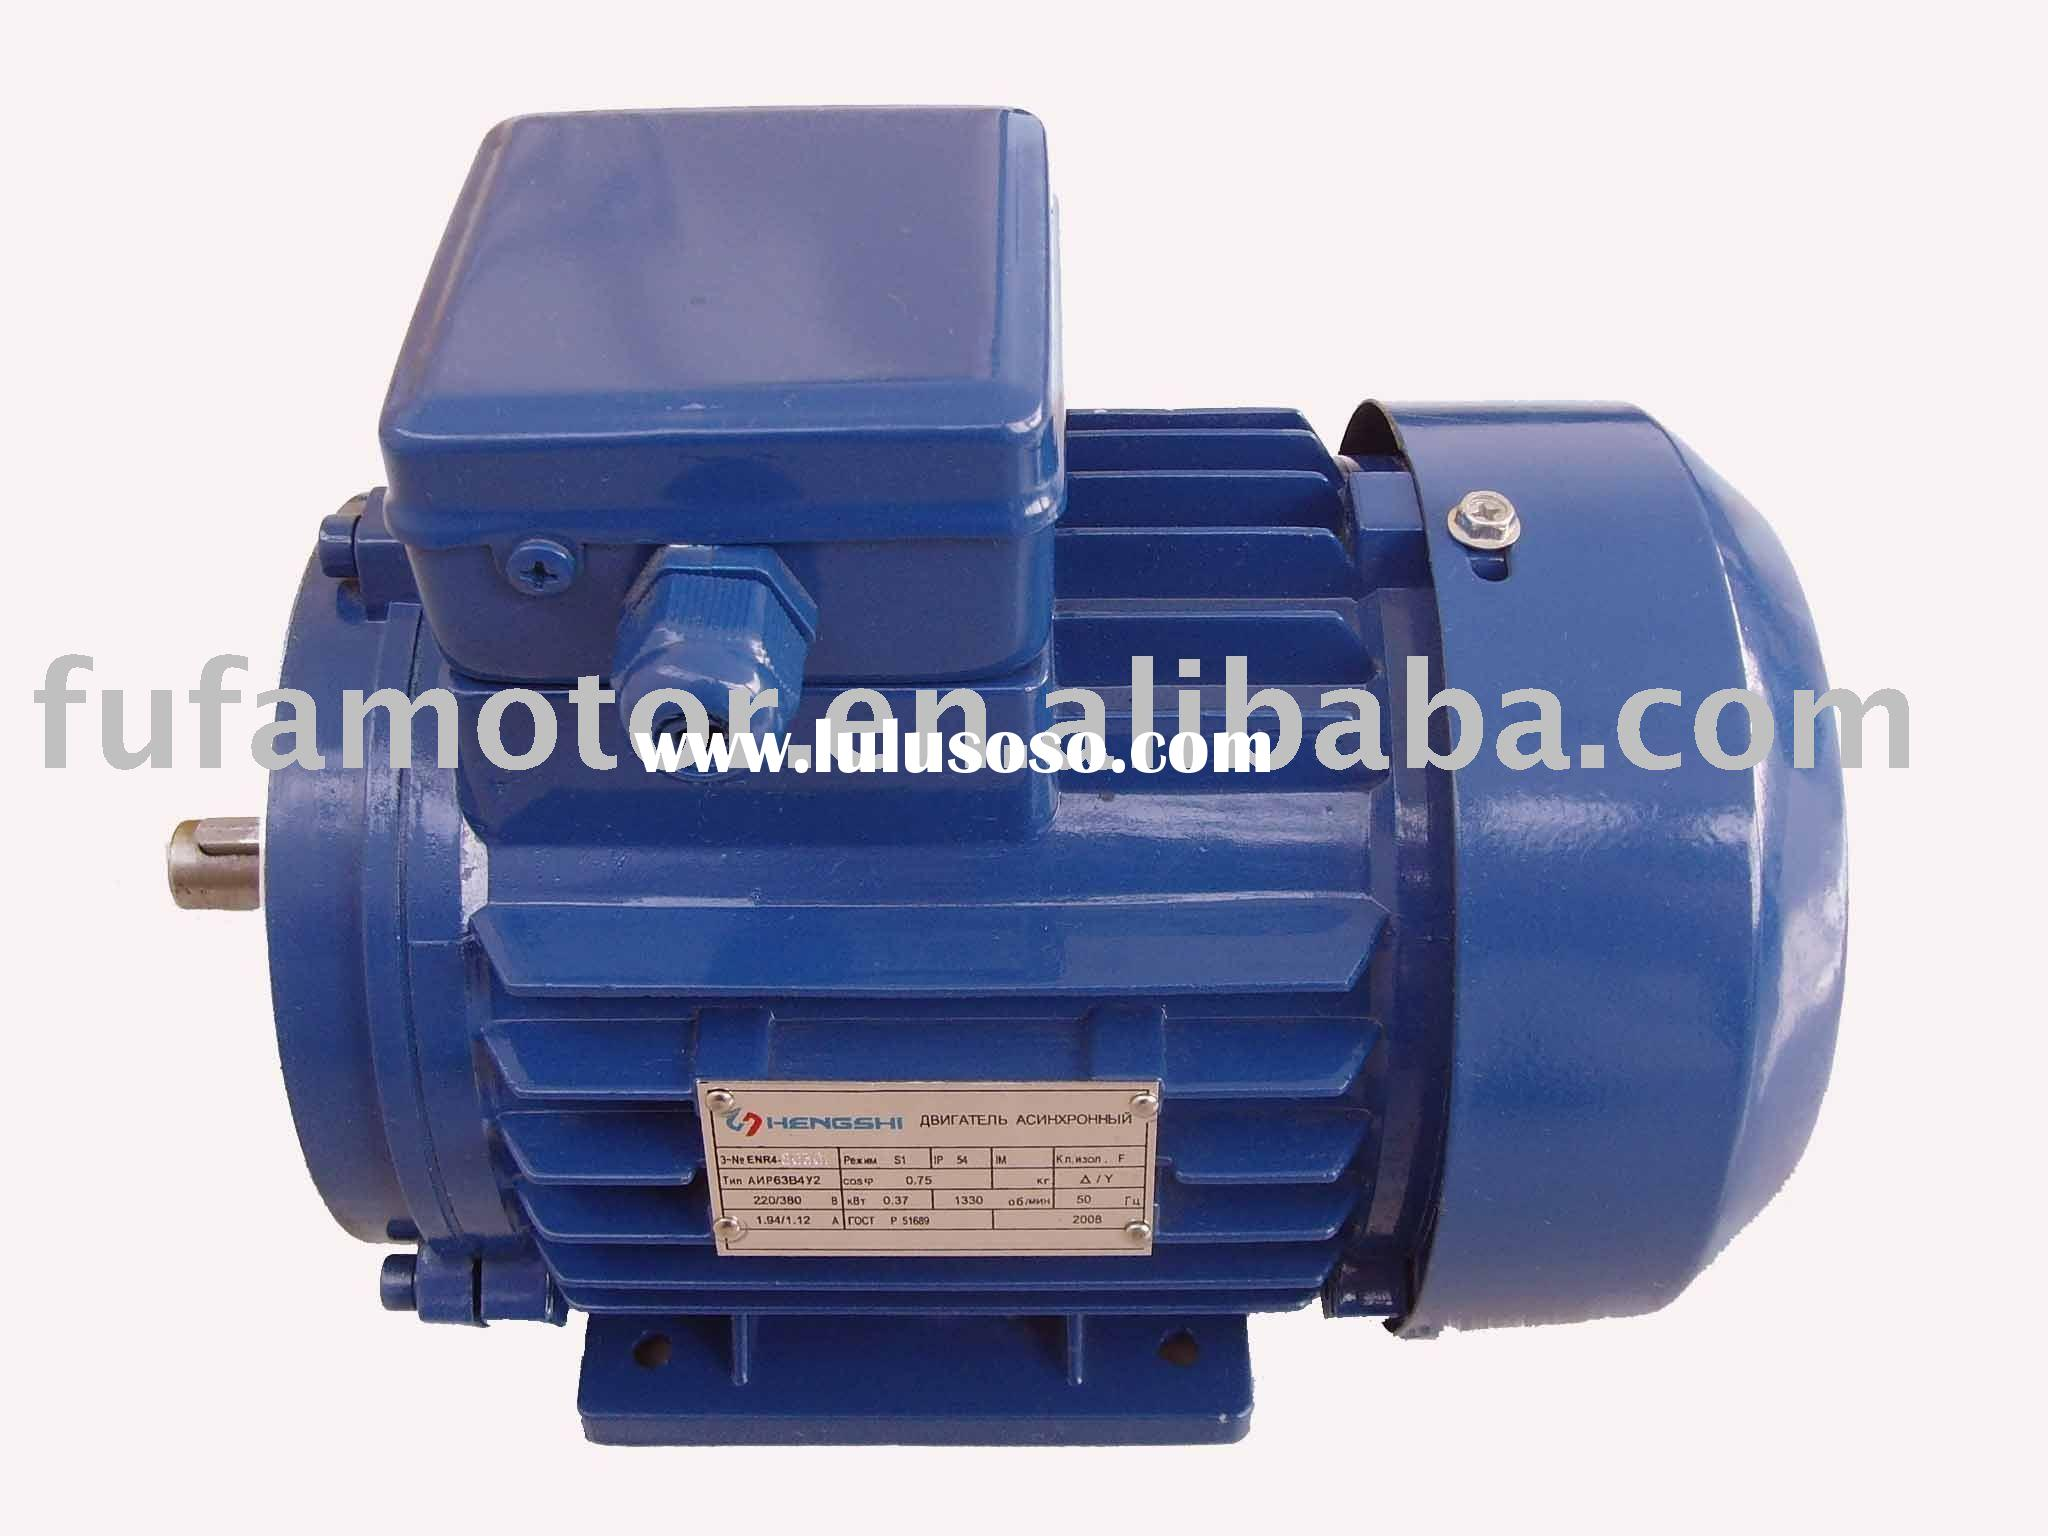 three phase squirrel cage electric motor